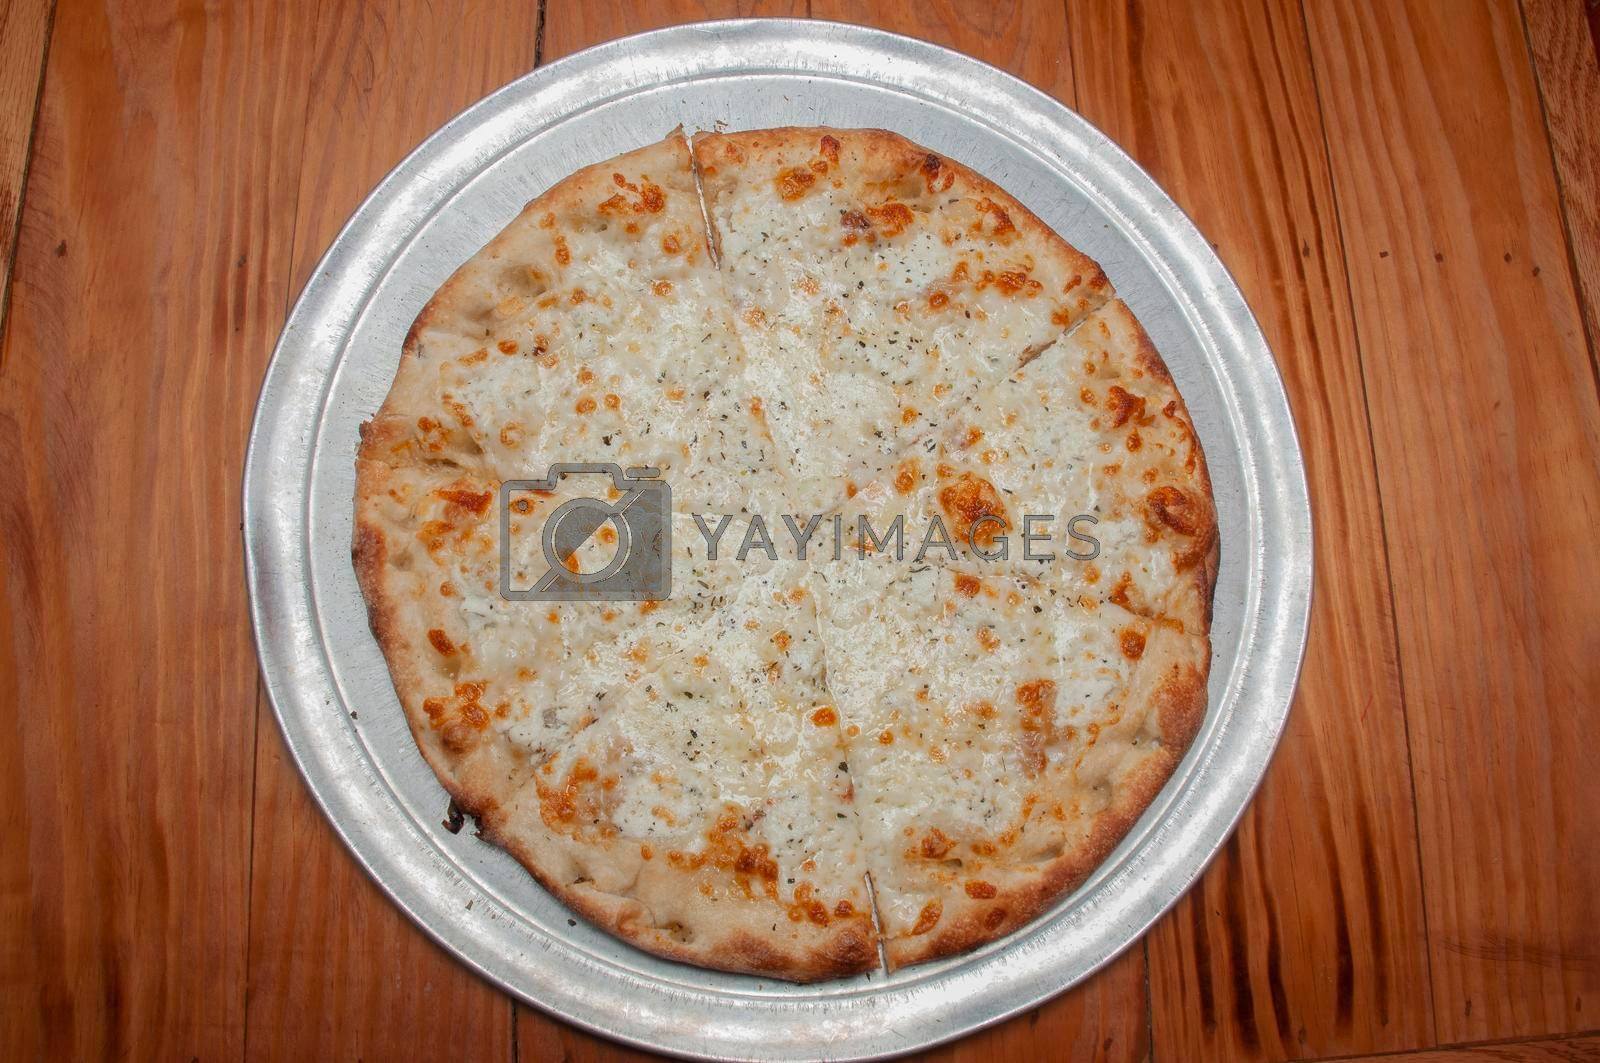 Delicious tomato sauce cheese covered hot and tasty white pizza pie